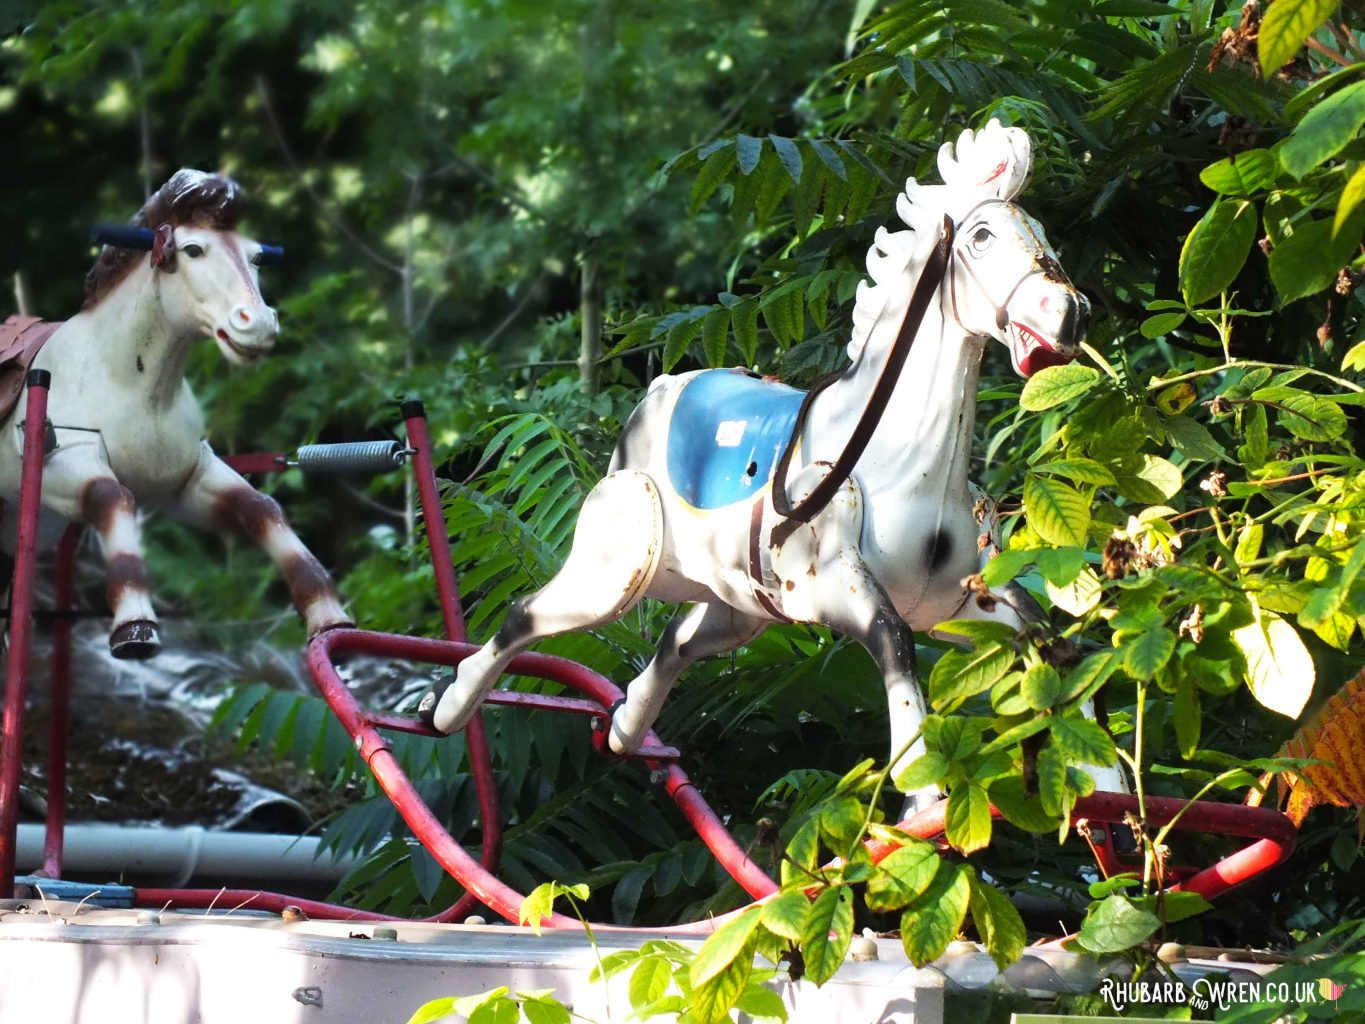 Vintage rocking horse on roof of cafe at Farrs Meadow campsite, Dorset, UK